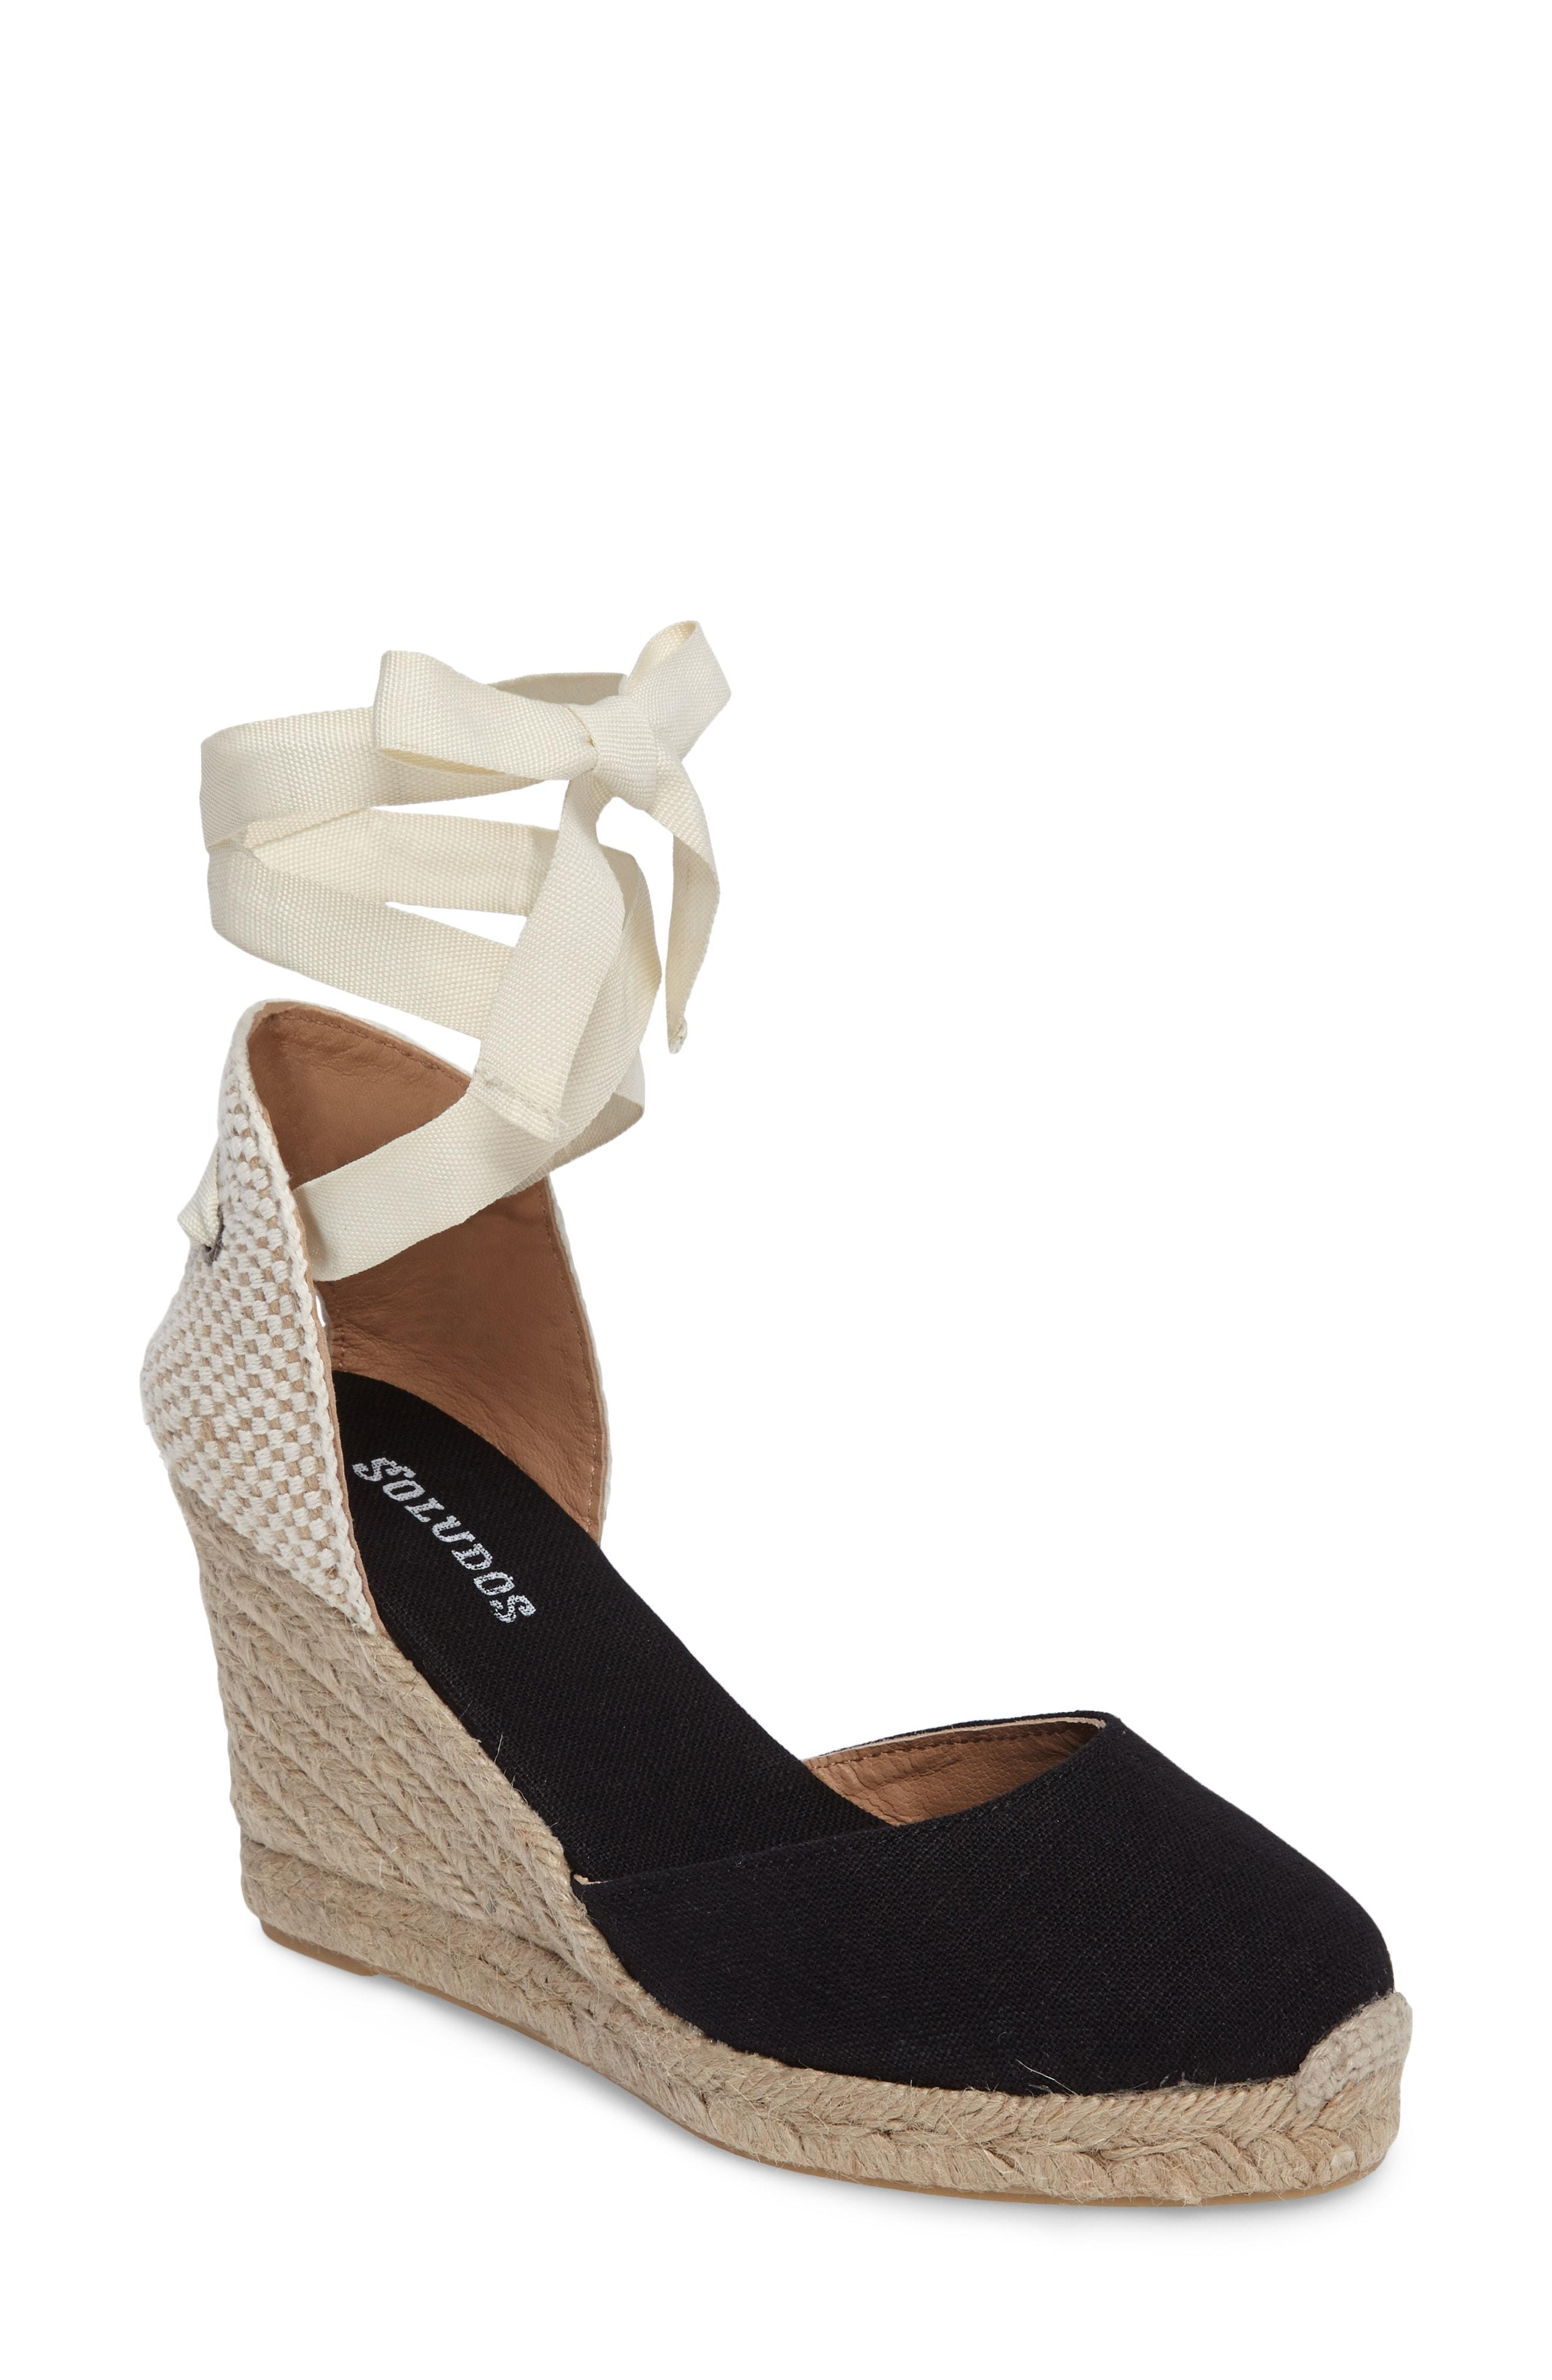 e203478ed53 Soludos Tall Lace Up Espadrille Wedge Sandals In Black